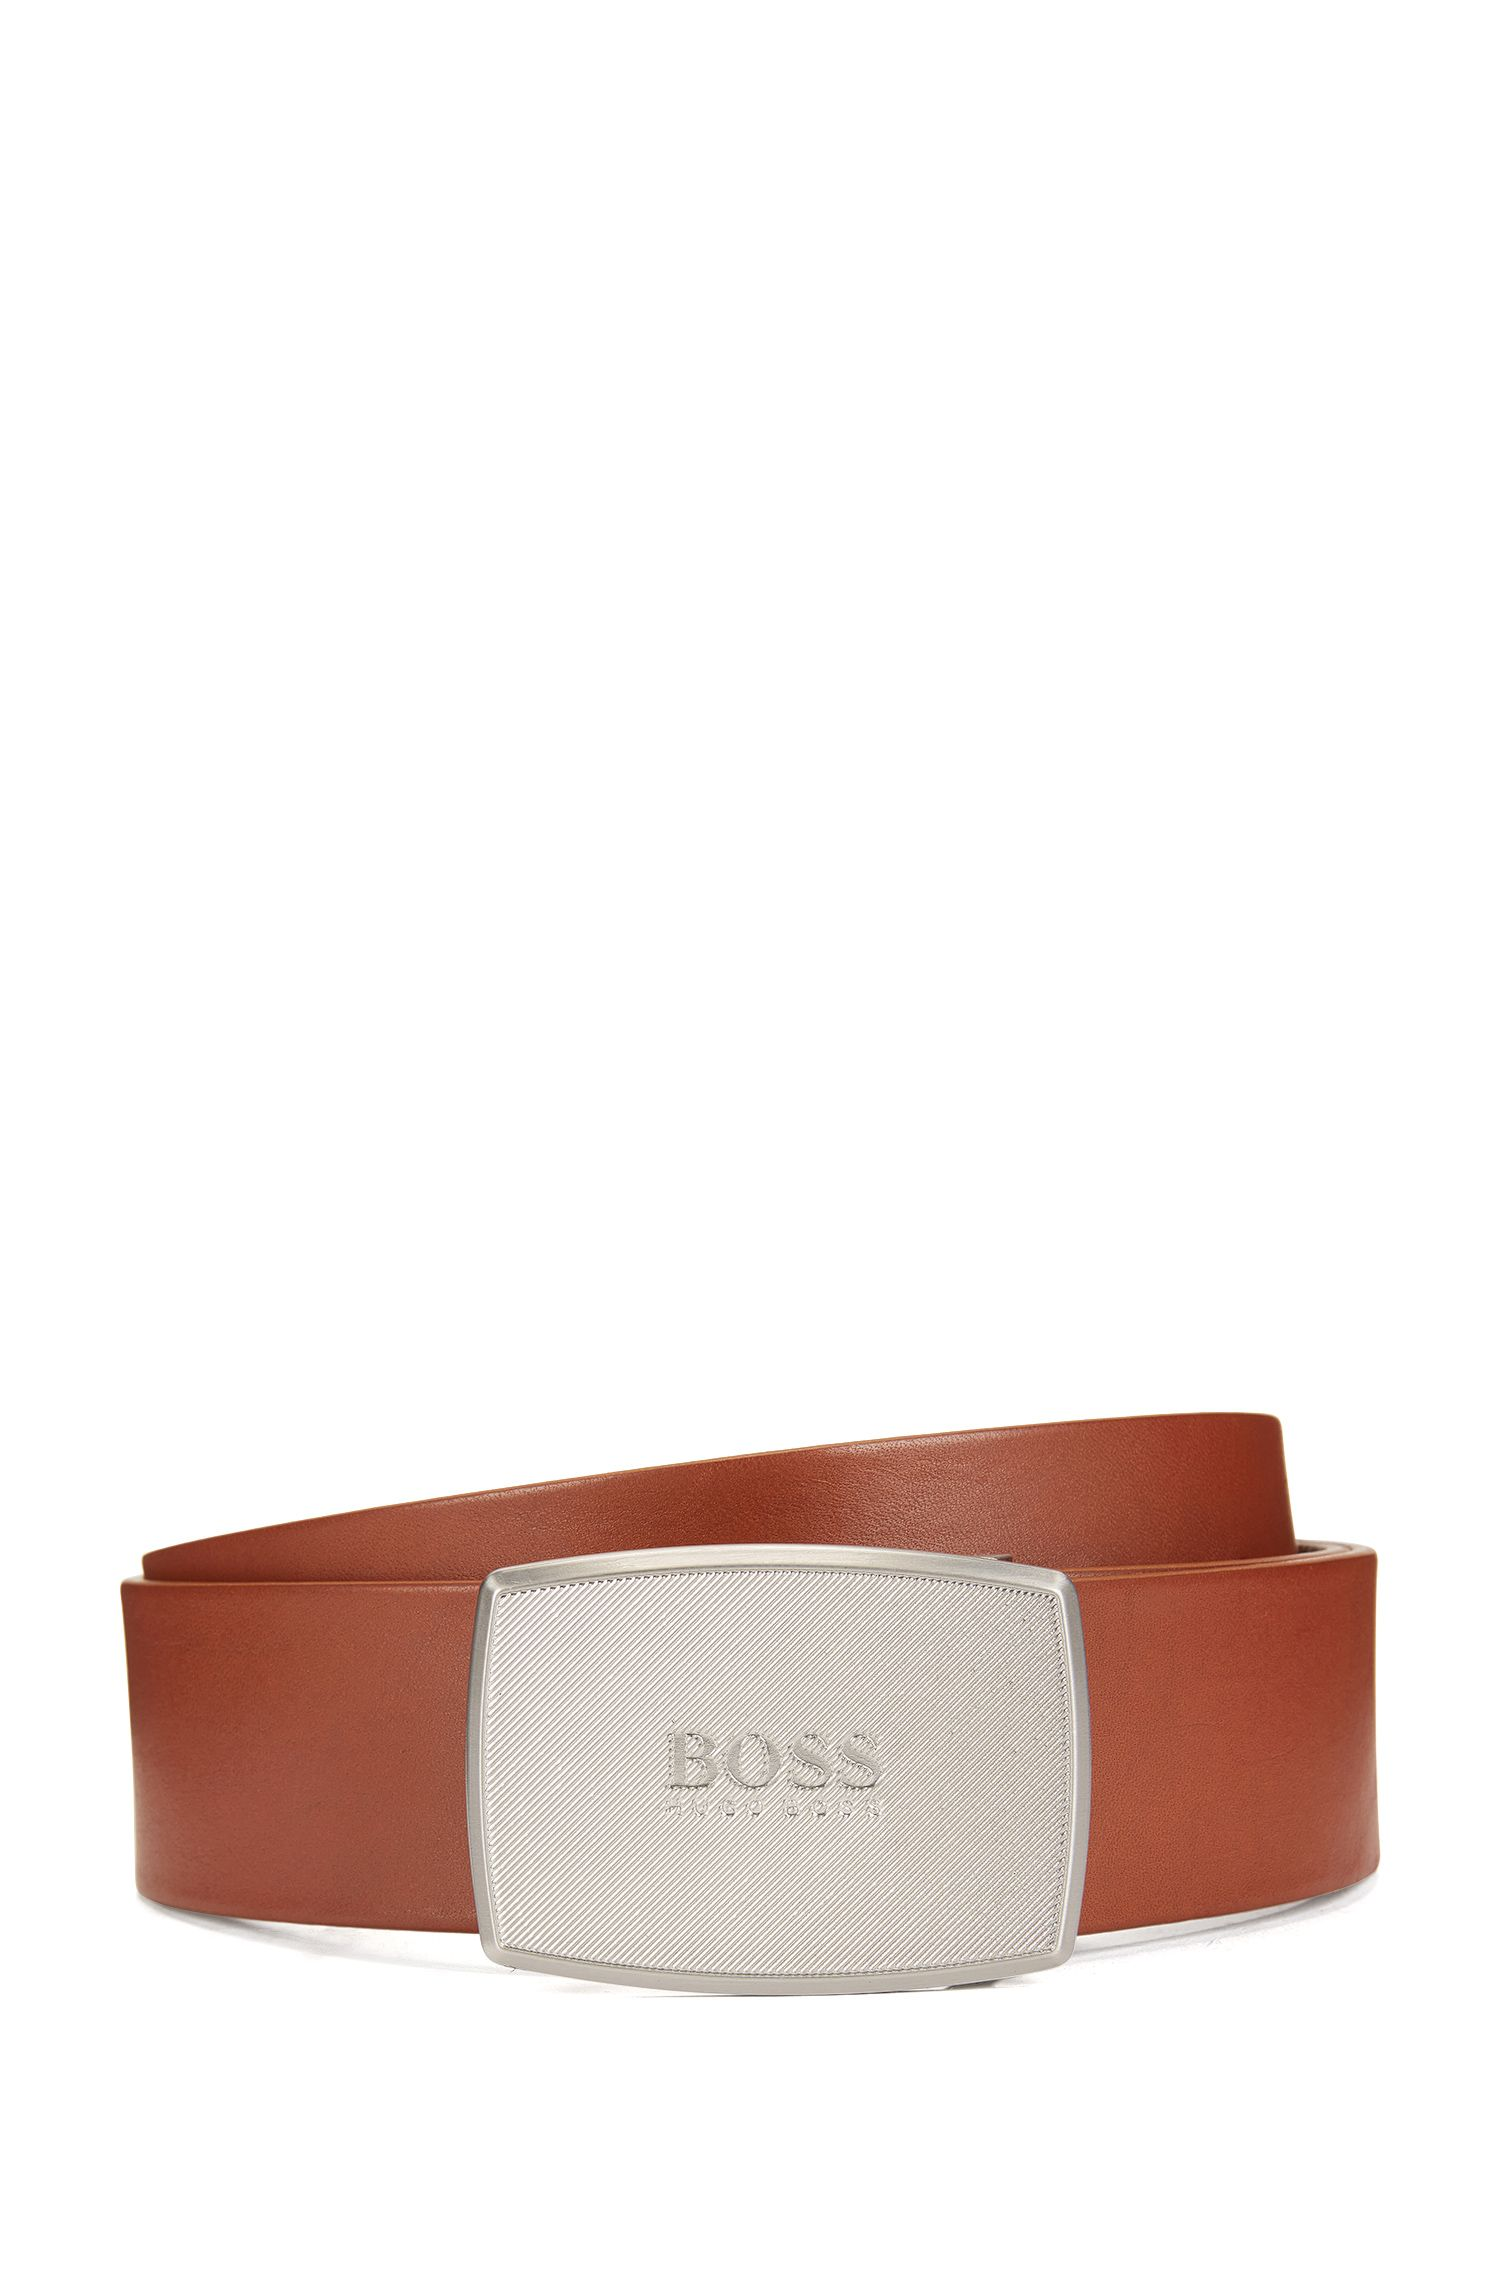 Smooth leather belt with textured plaque buckle